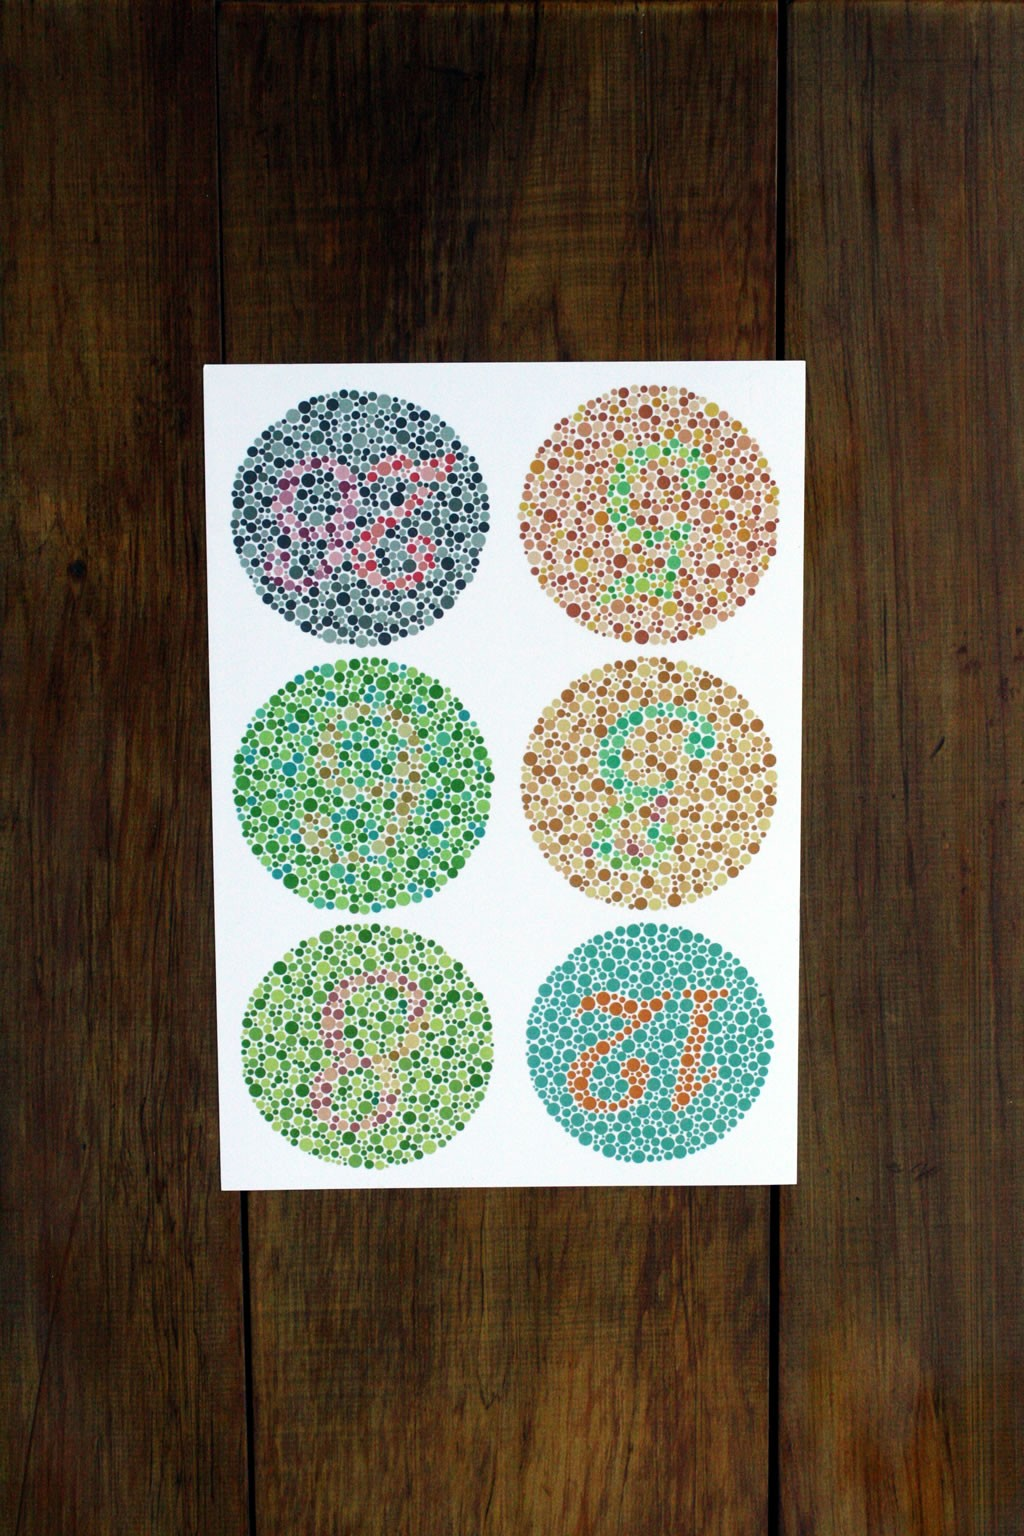 Colour Vision Color Blindness Test Ishihara - Eye charts and eye ...